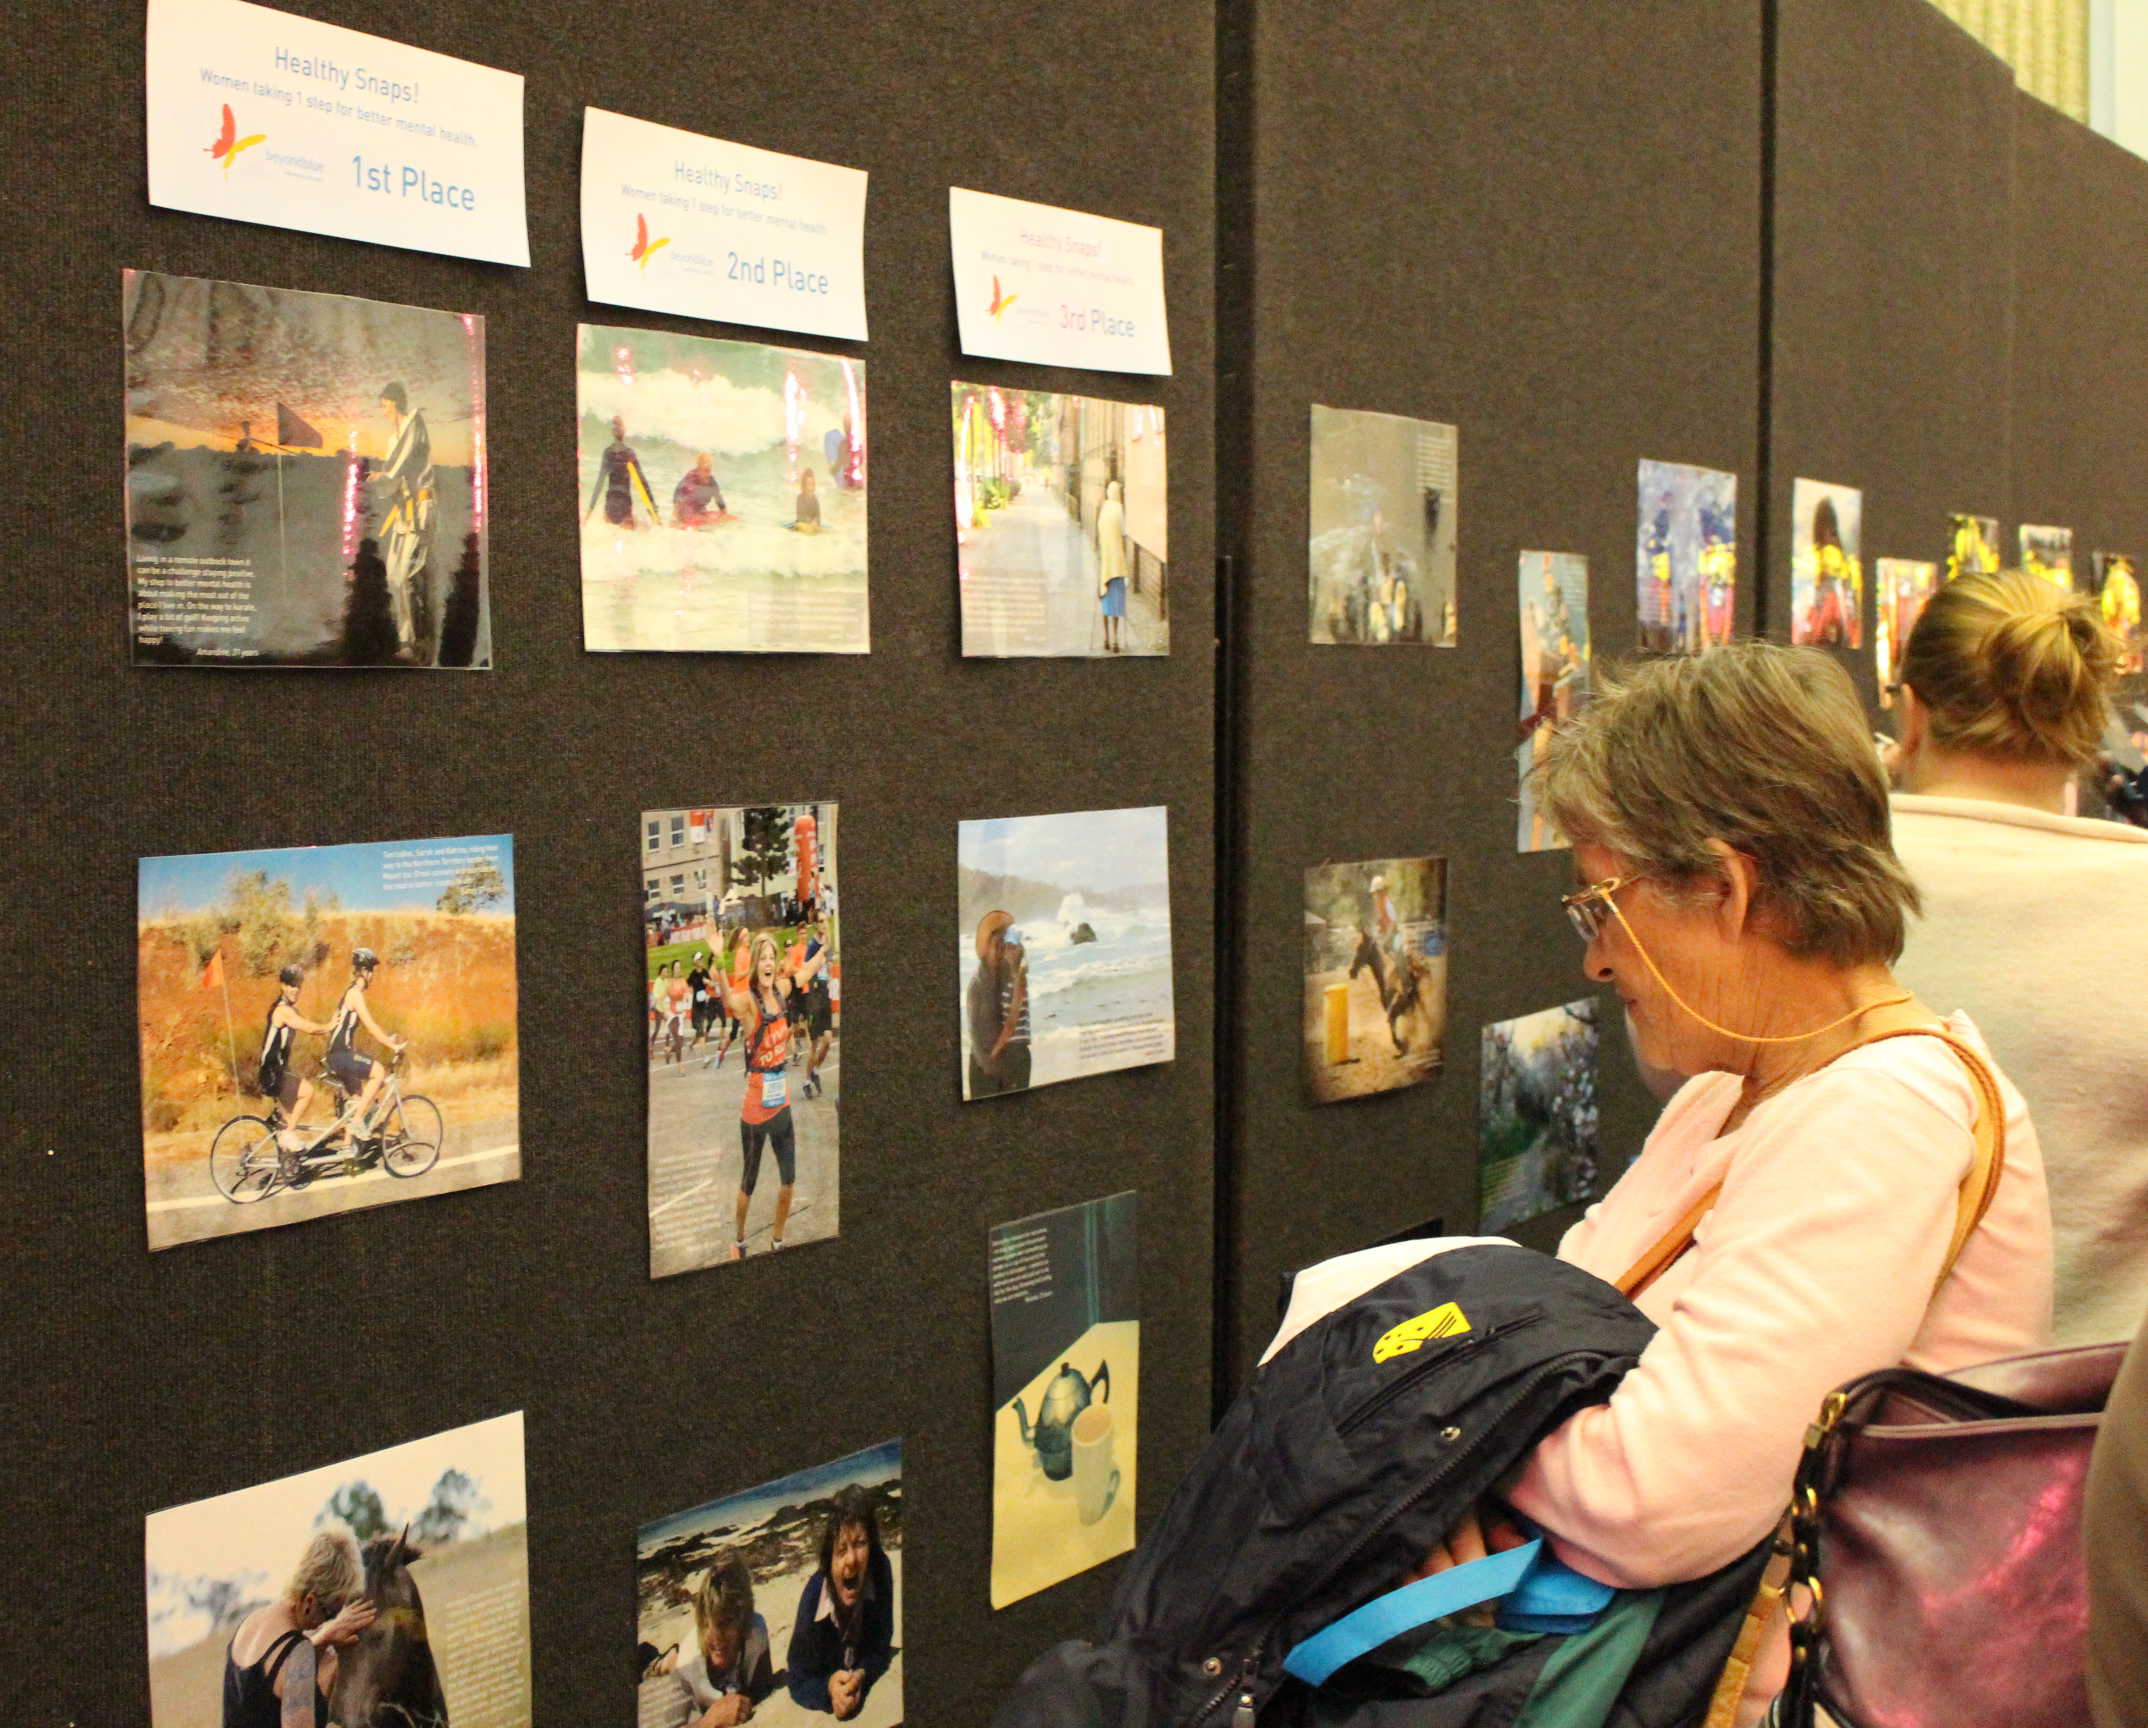 Looking at photos at the exhibition of 'Healthy snaps! Women taking 1 step for better mental health' in Toowoomba.